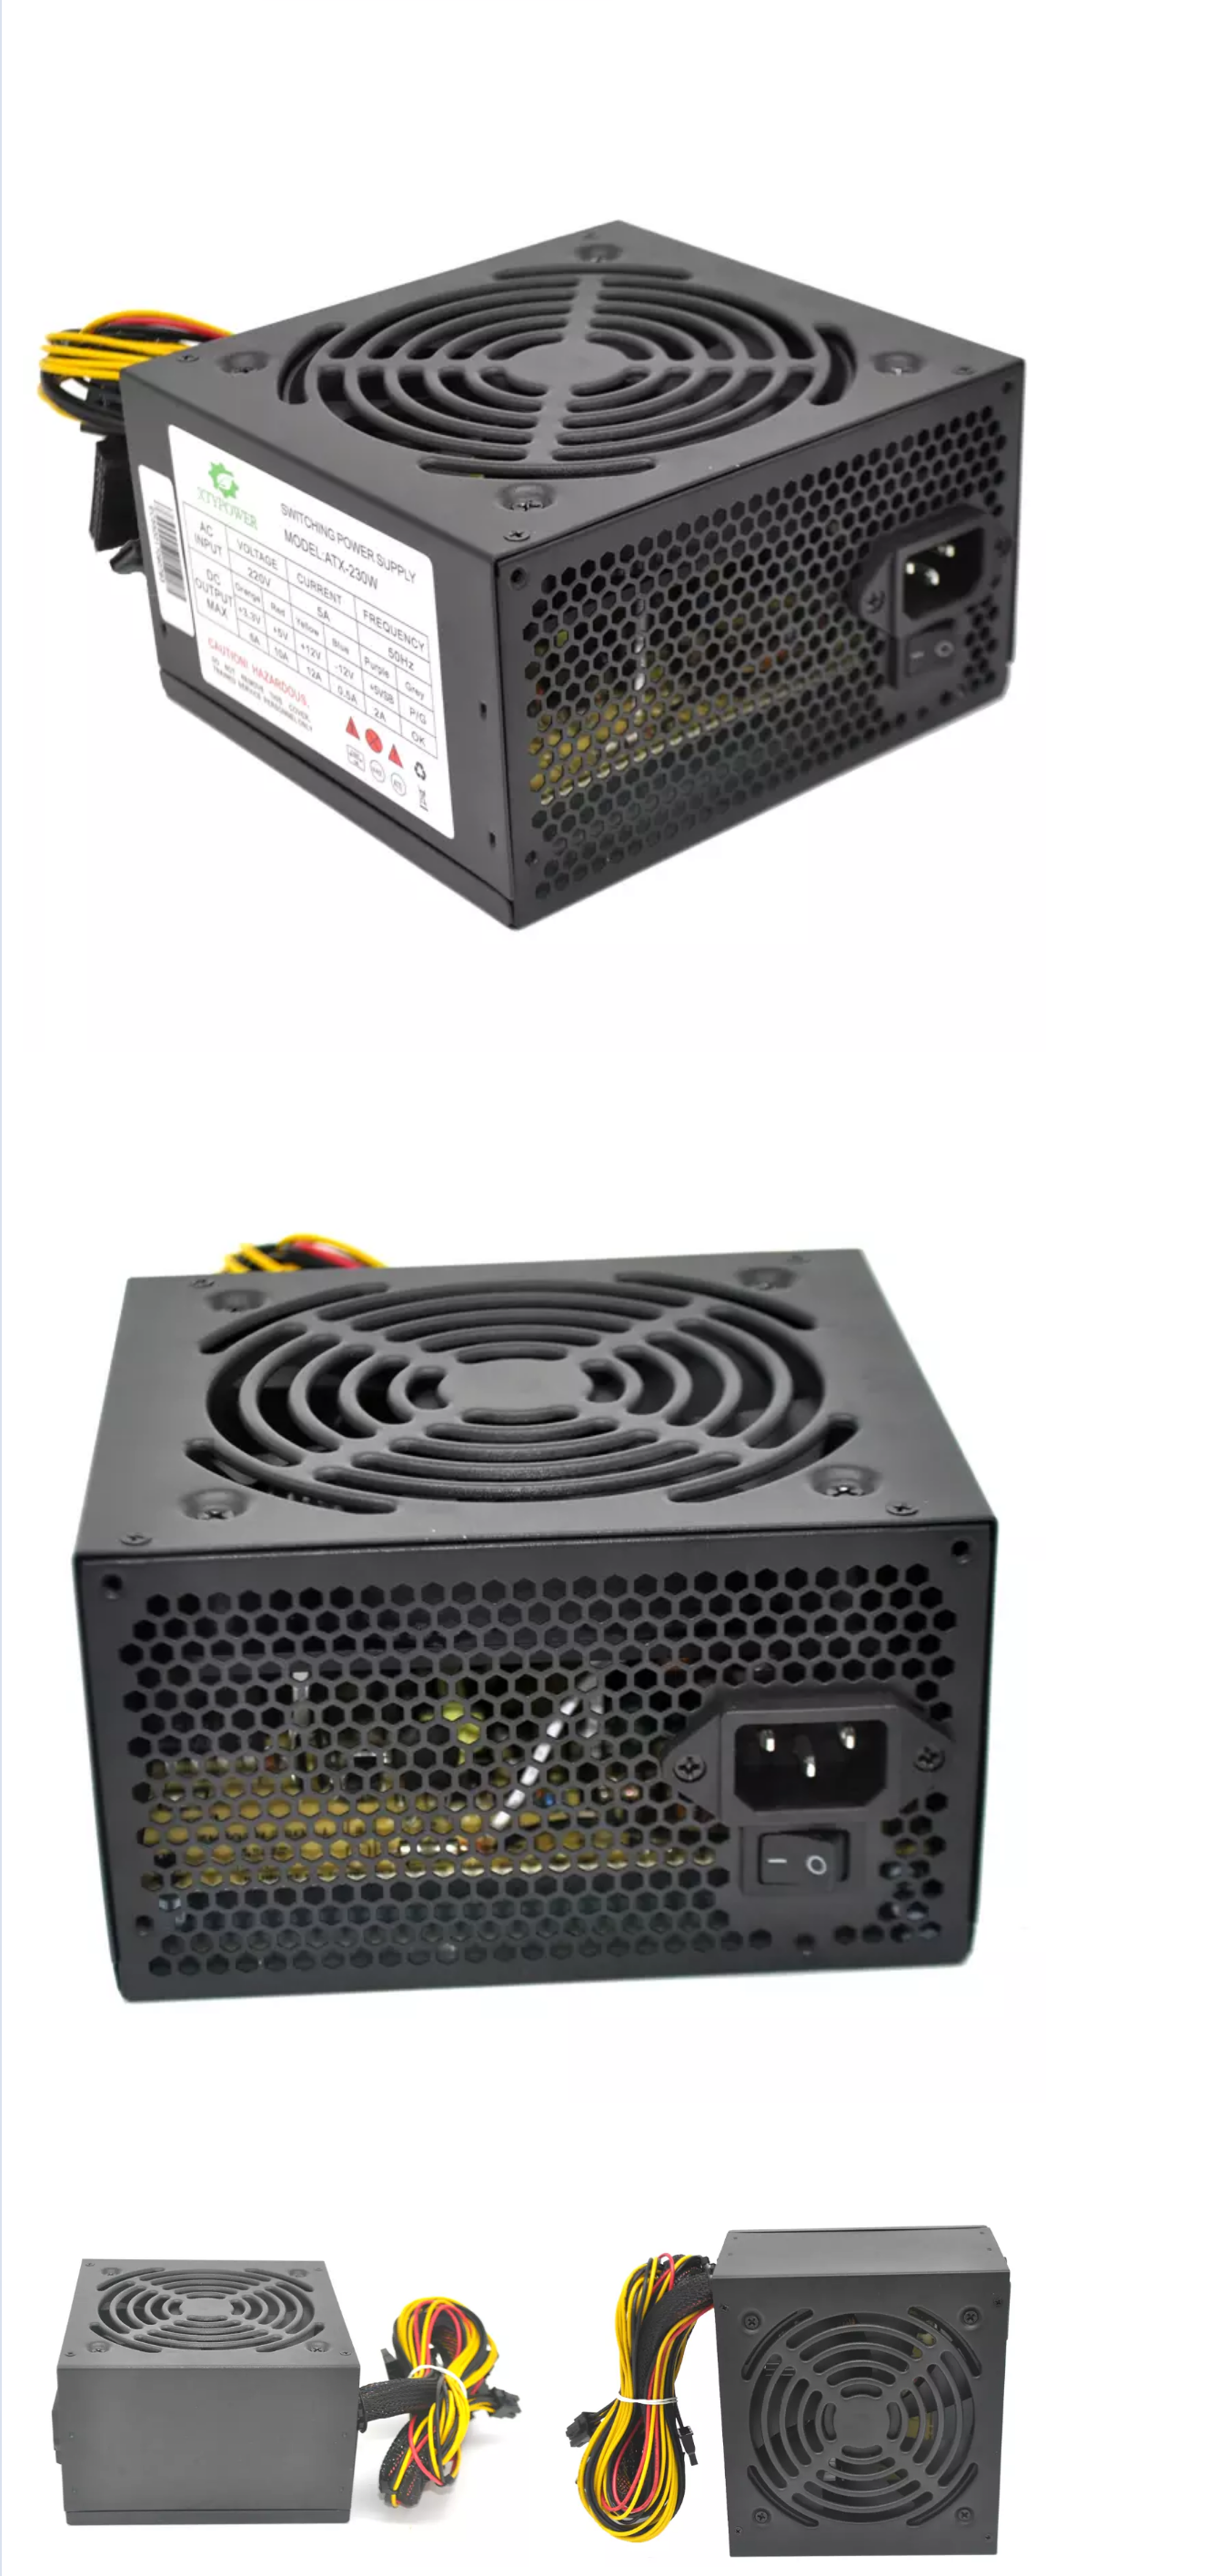 Single output 230w atx DC power supply for desktop